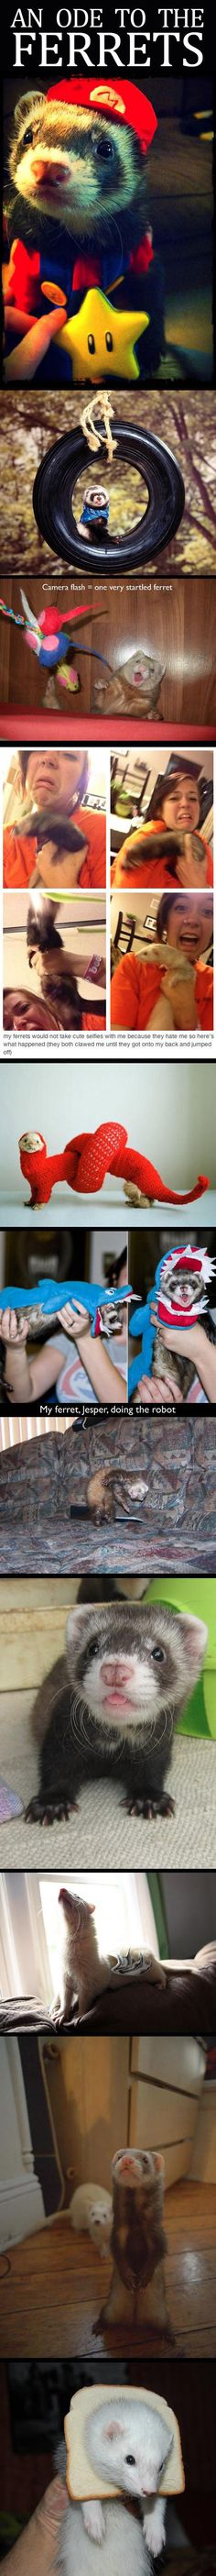 Here are some of the internet's most popular ferrets in random situations.